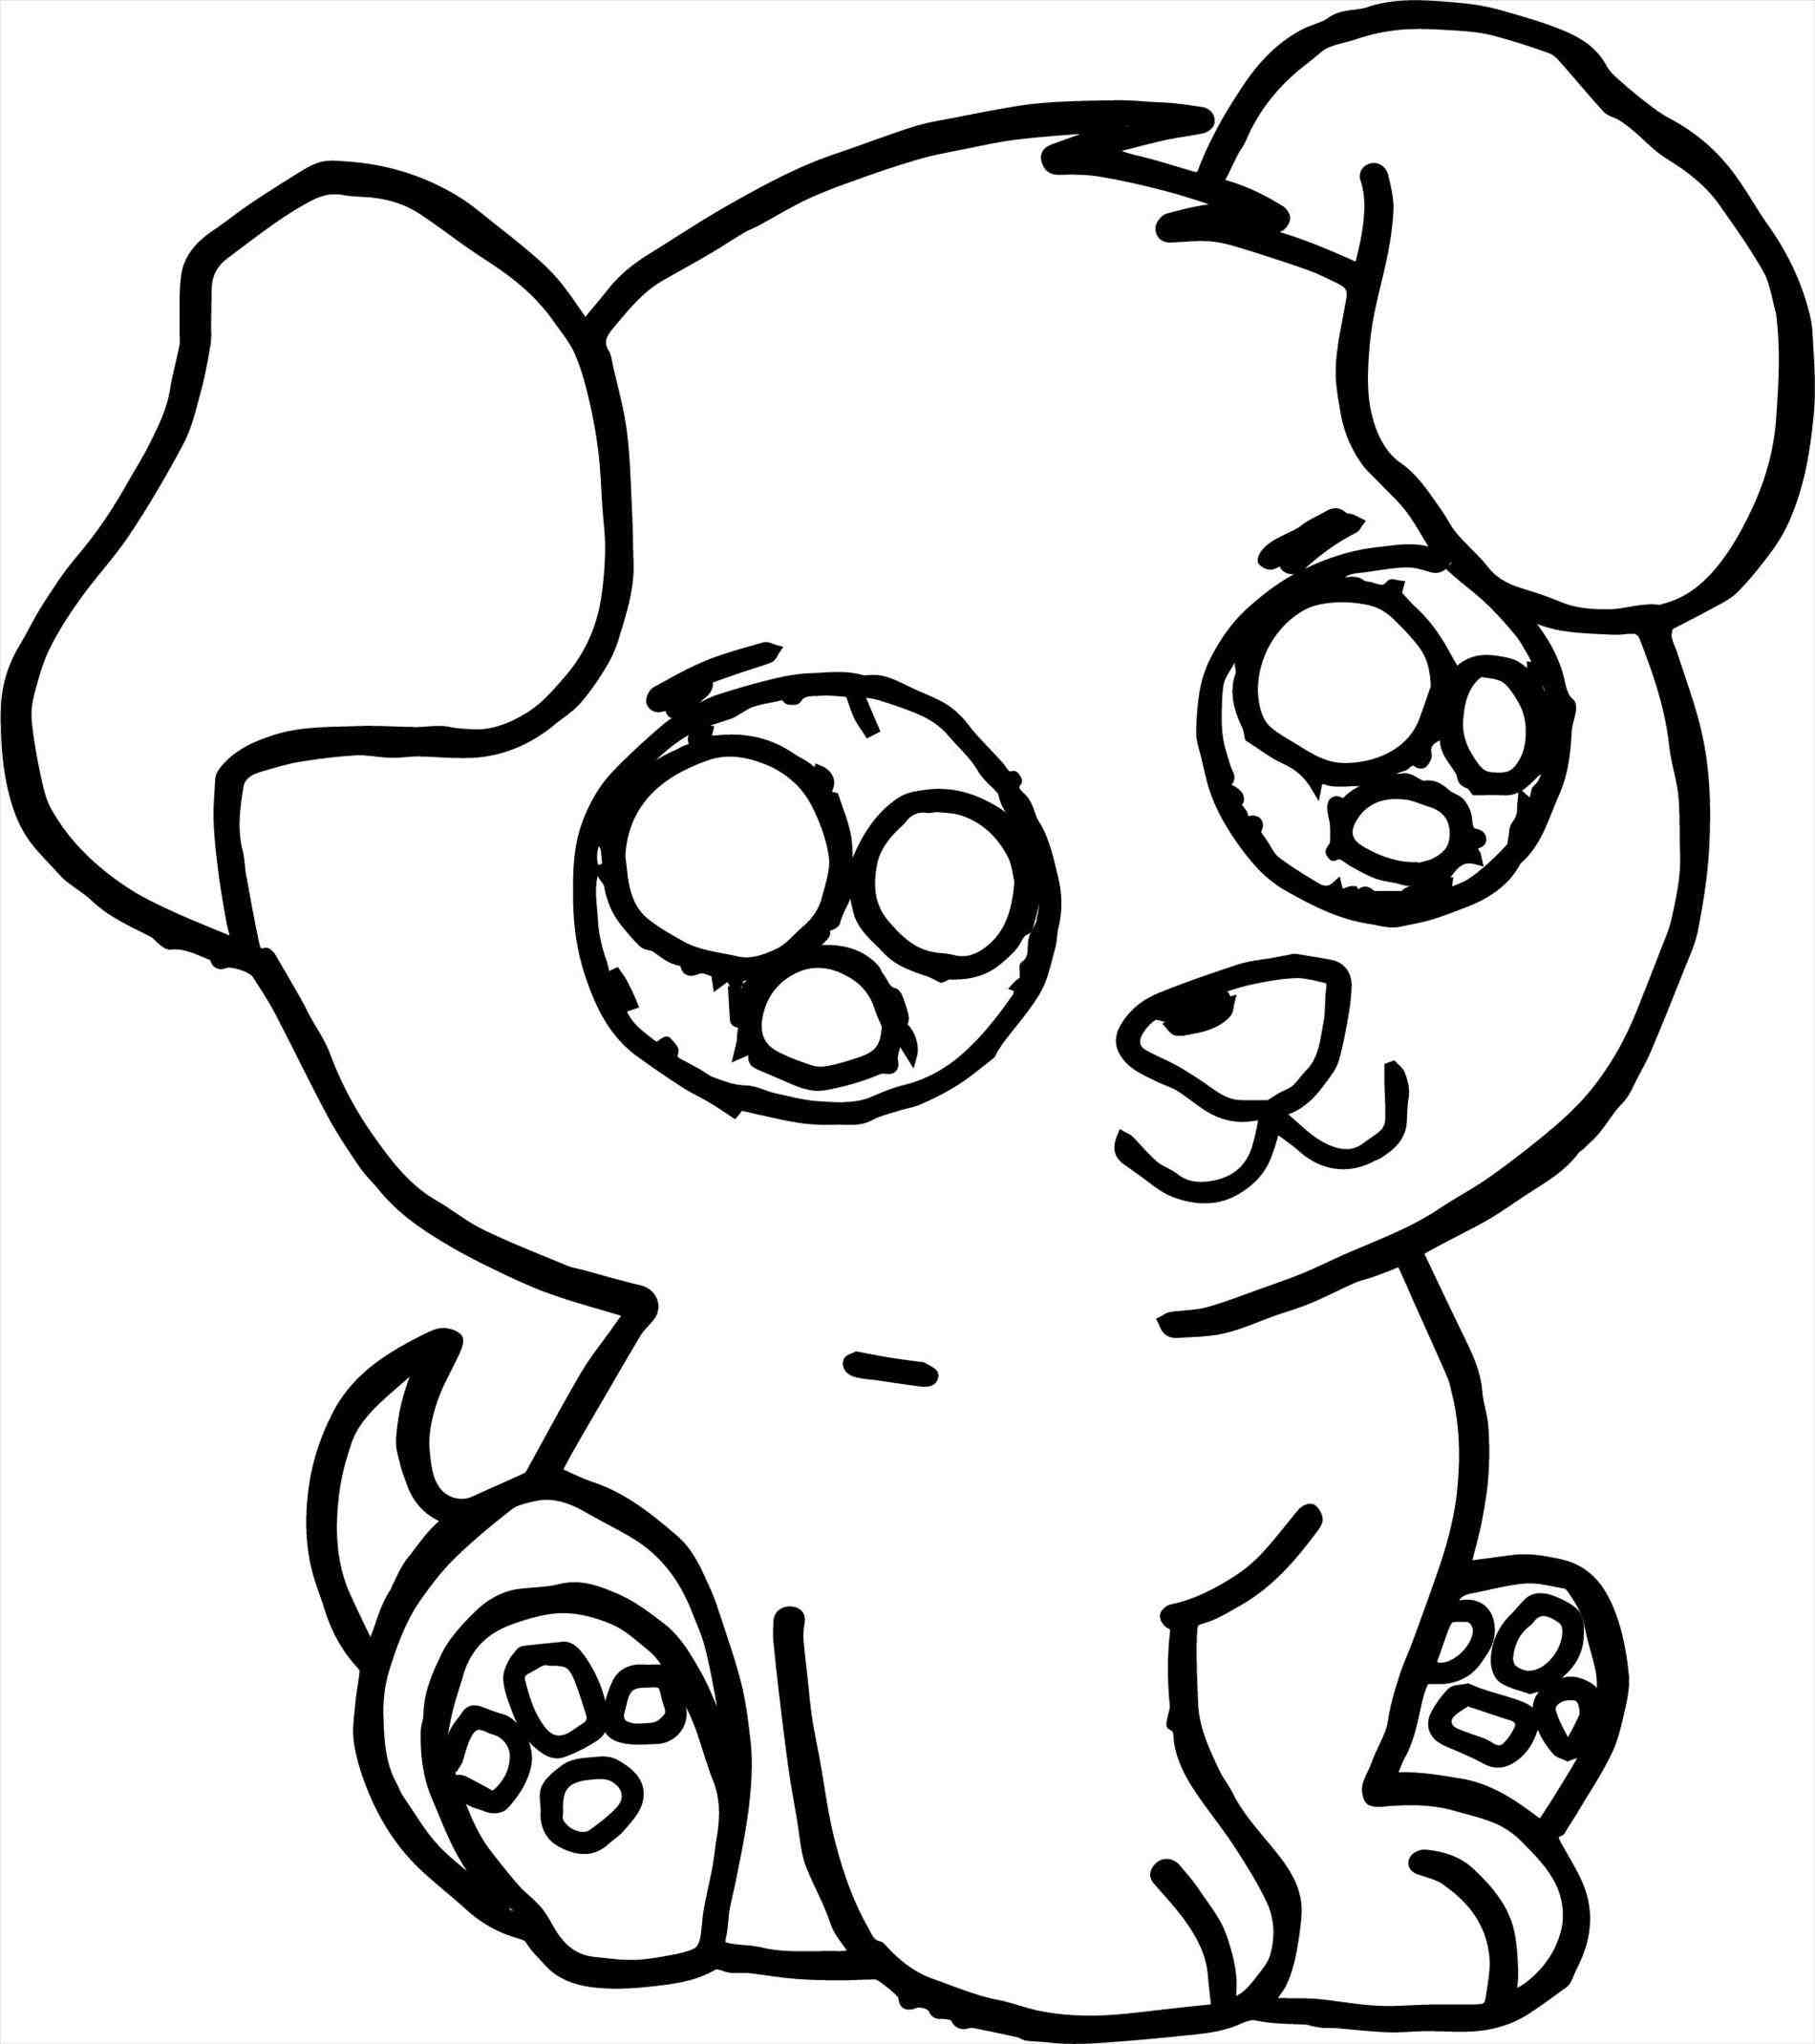 Cartoon Puppy Coloring Pages At Getdrawings Free Download